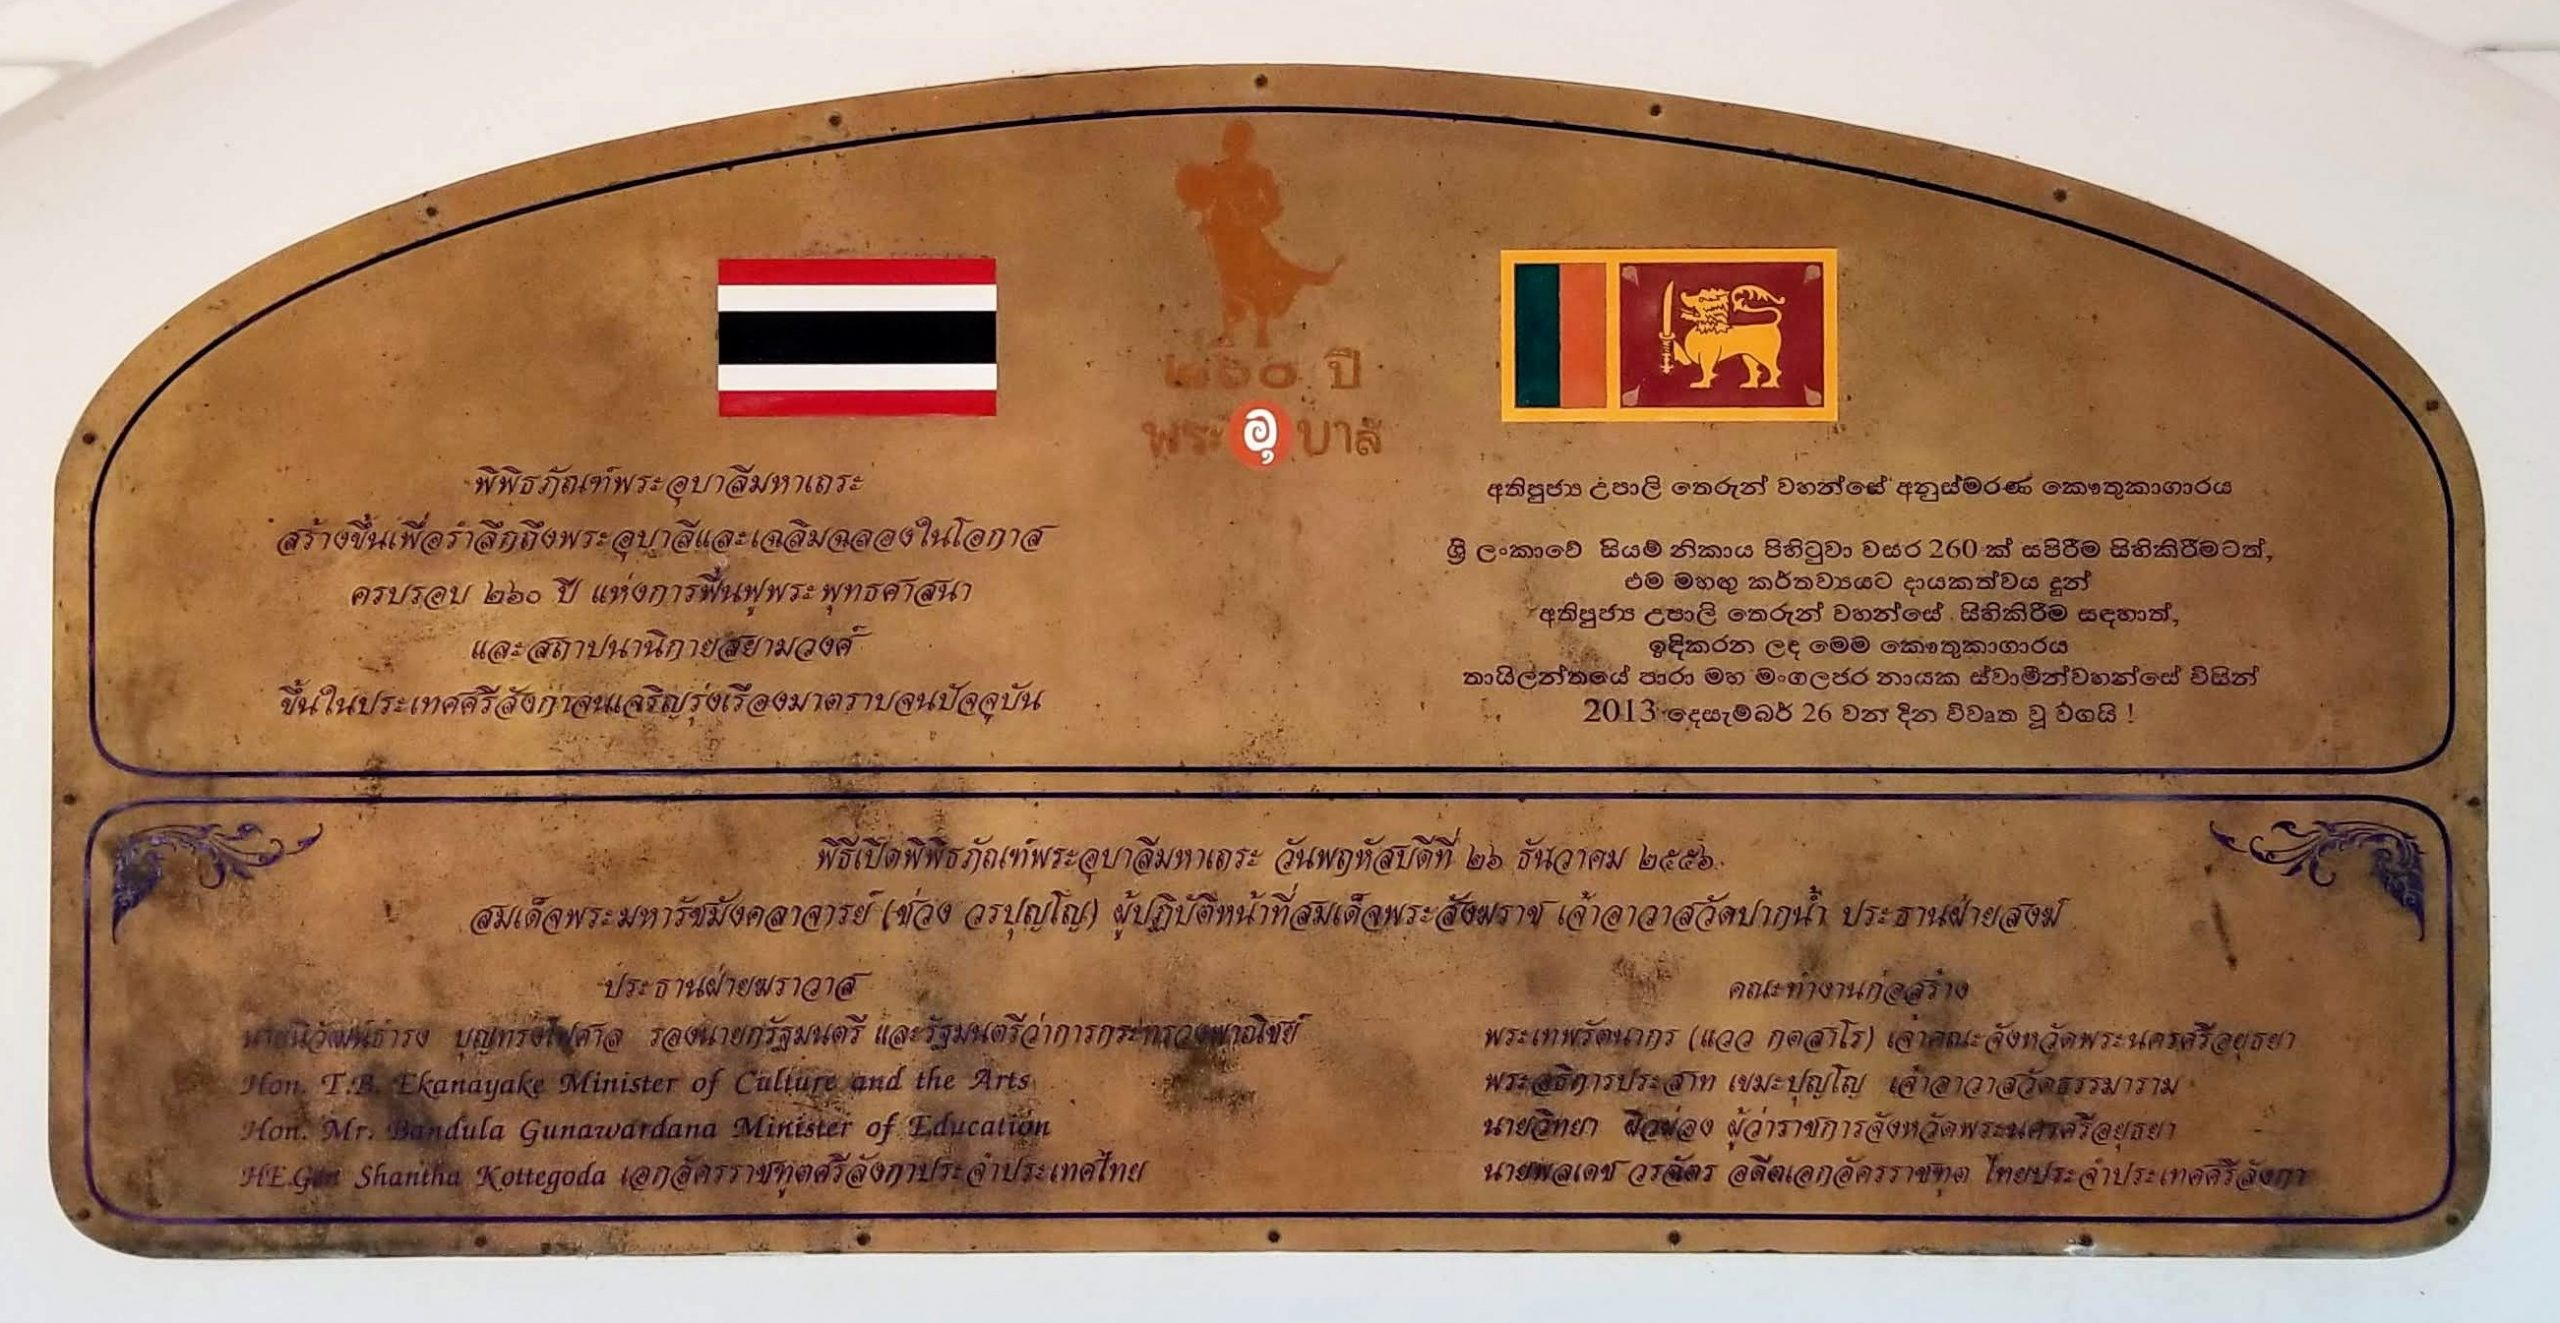 Commemorative bronze plaque in Thai and Sinhala, with the Thailand and Sri Lanka national flags